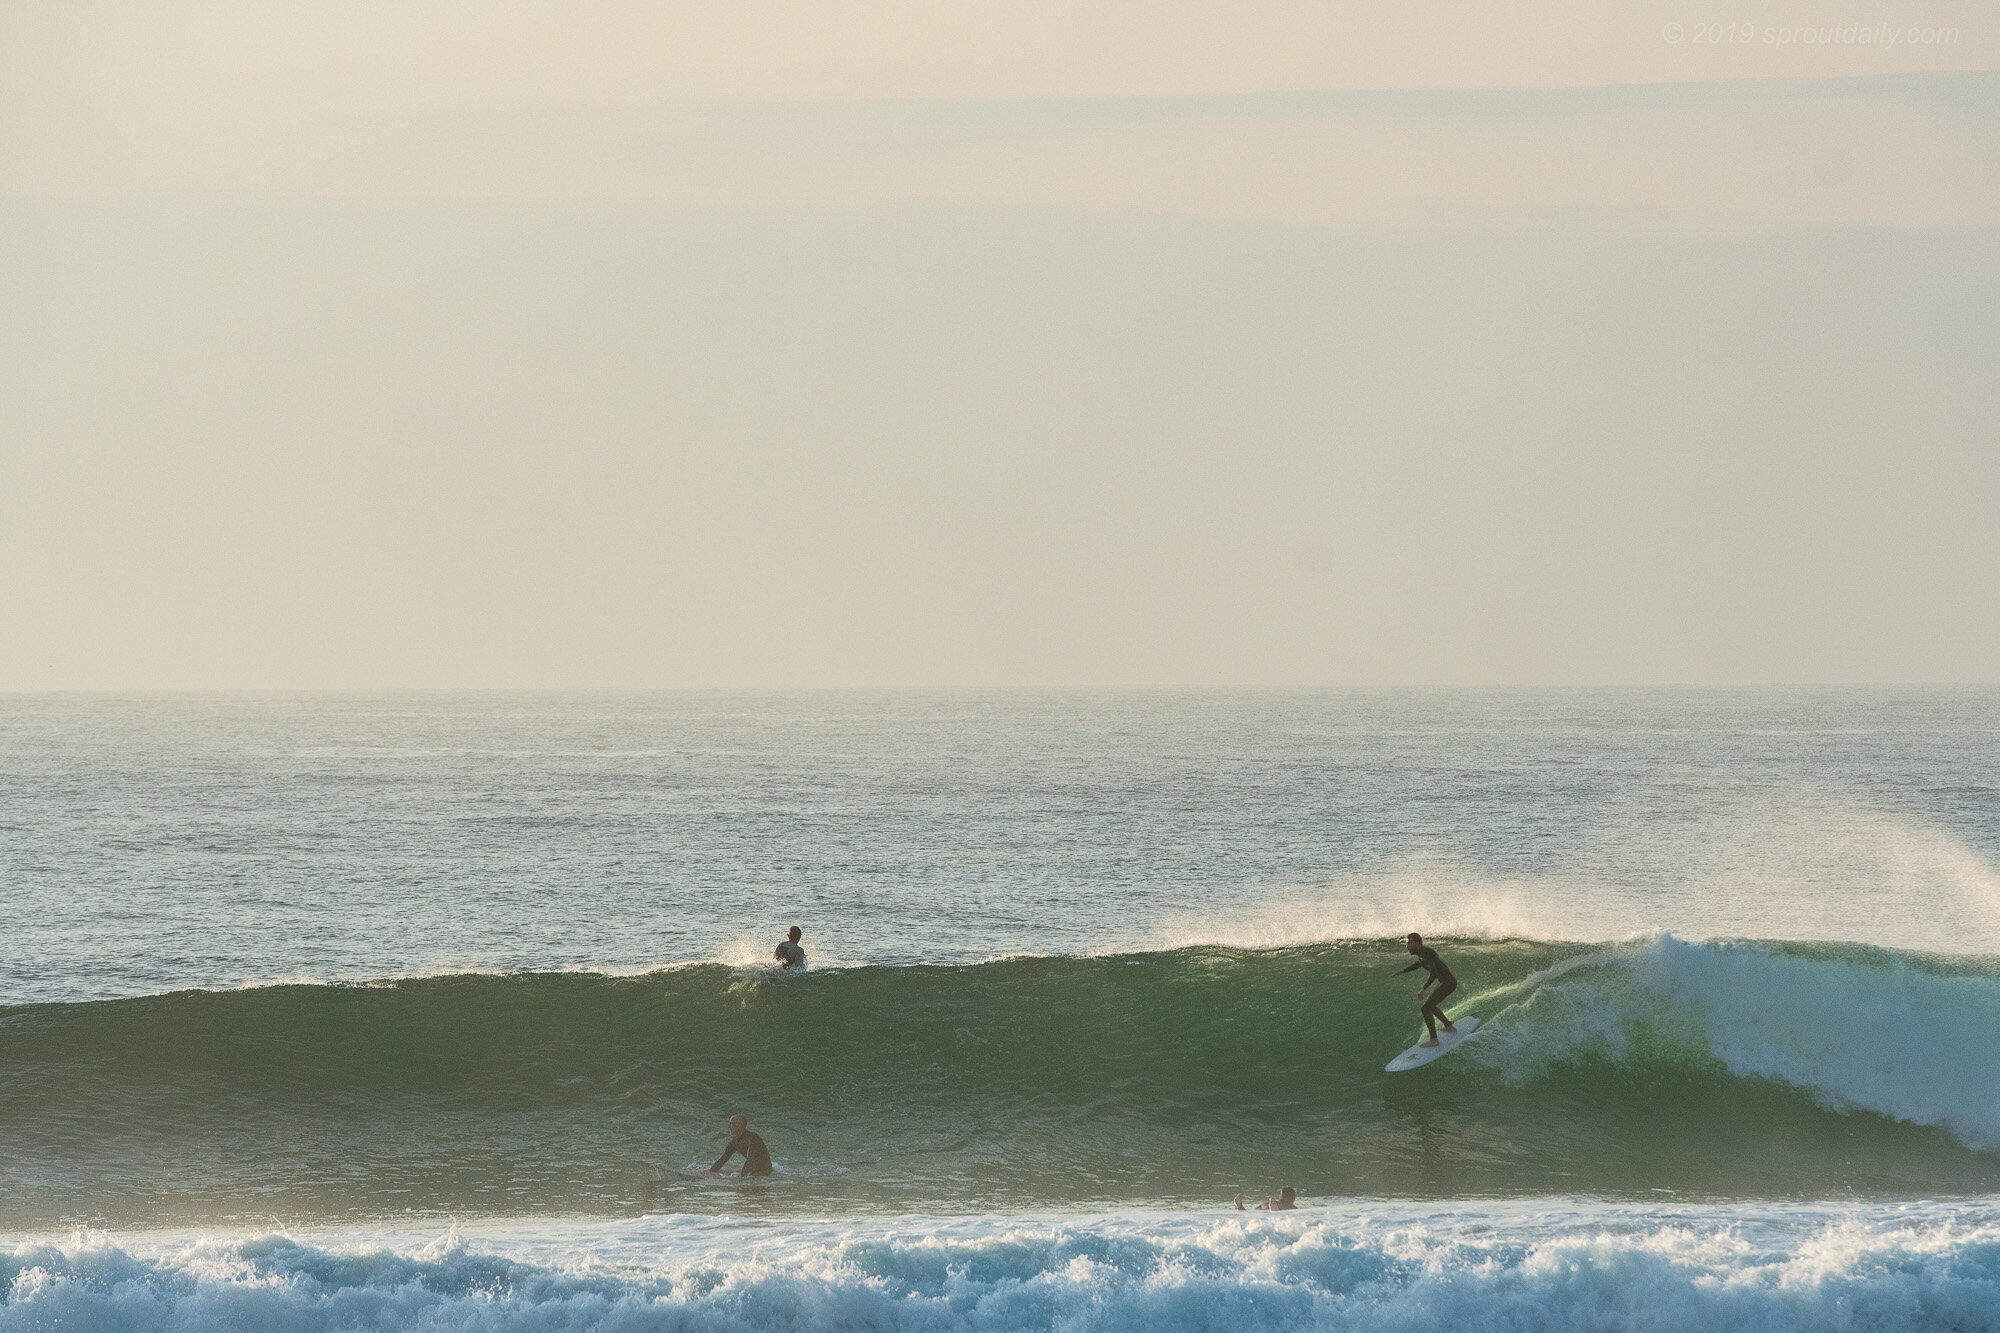 Heath - Outside on a screamer! Where'd that swell come from!